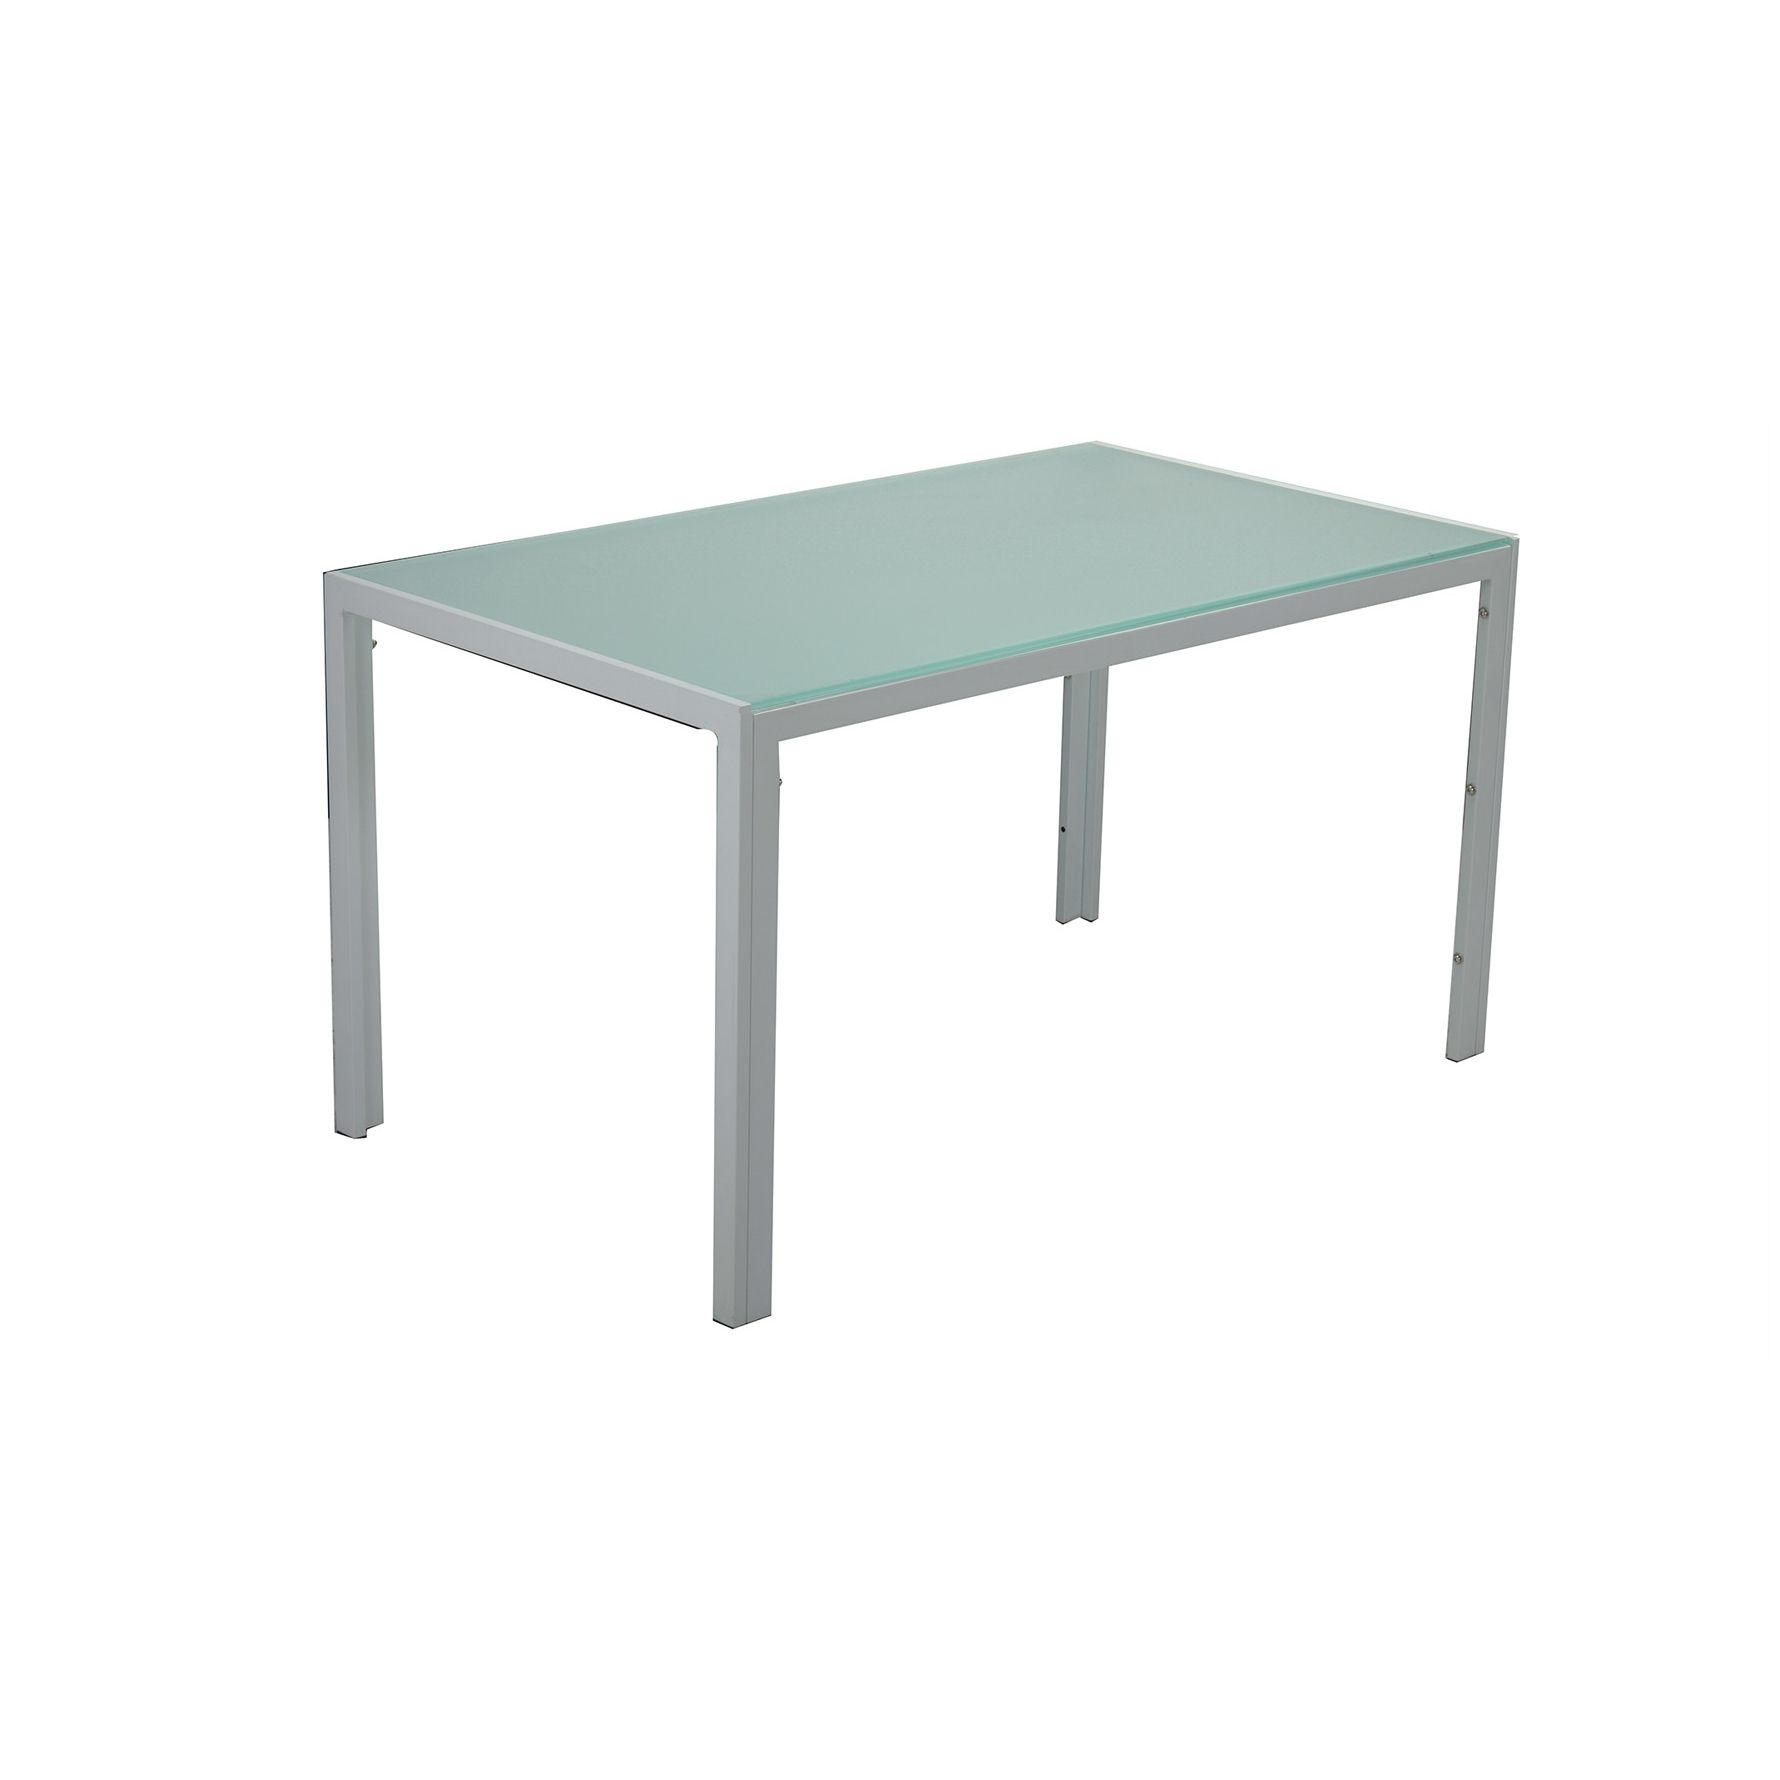 Table a manger verre blanc conceptions de maison for Table verre blanc extensible